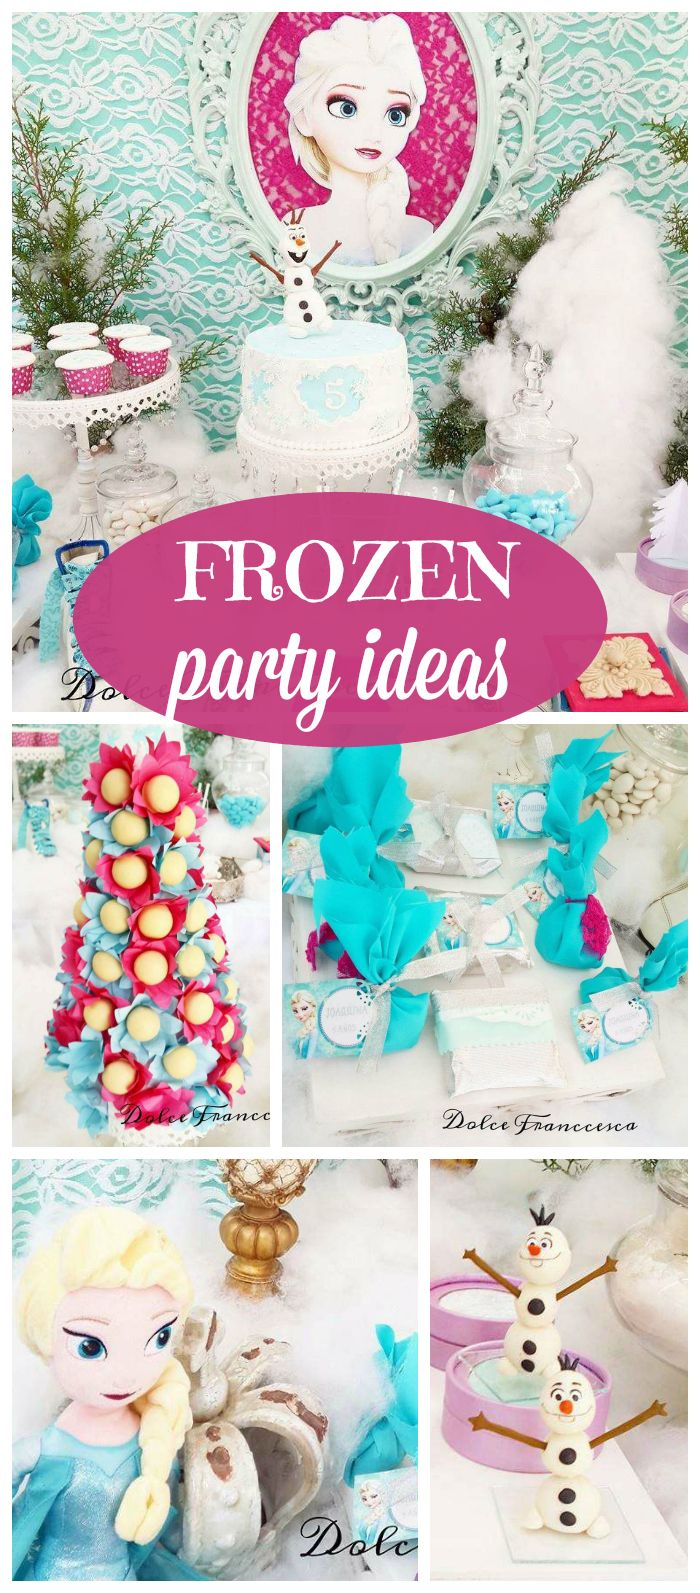 A Frozen girl birthday party with gorgeous colors, decorations and cake!  See more party planning ideas at CatchMyParty.com!